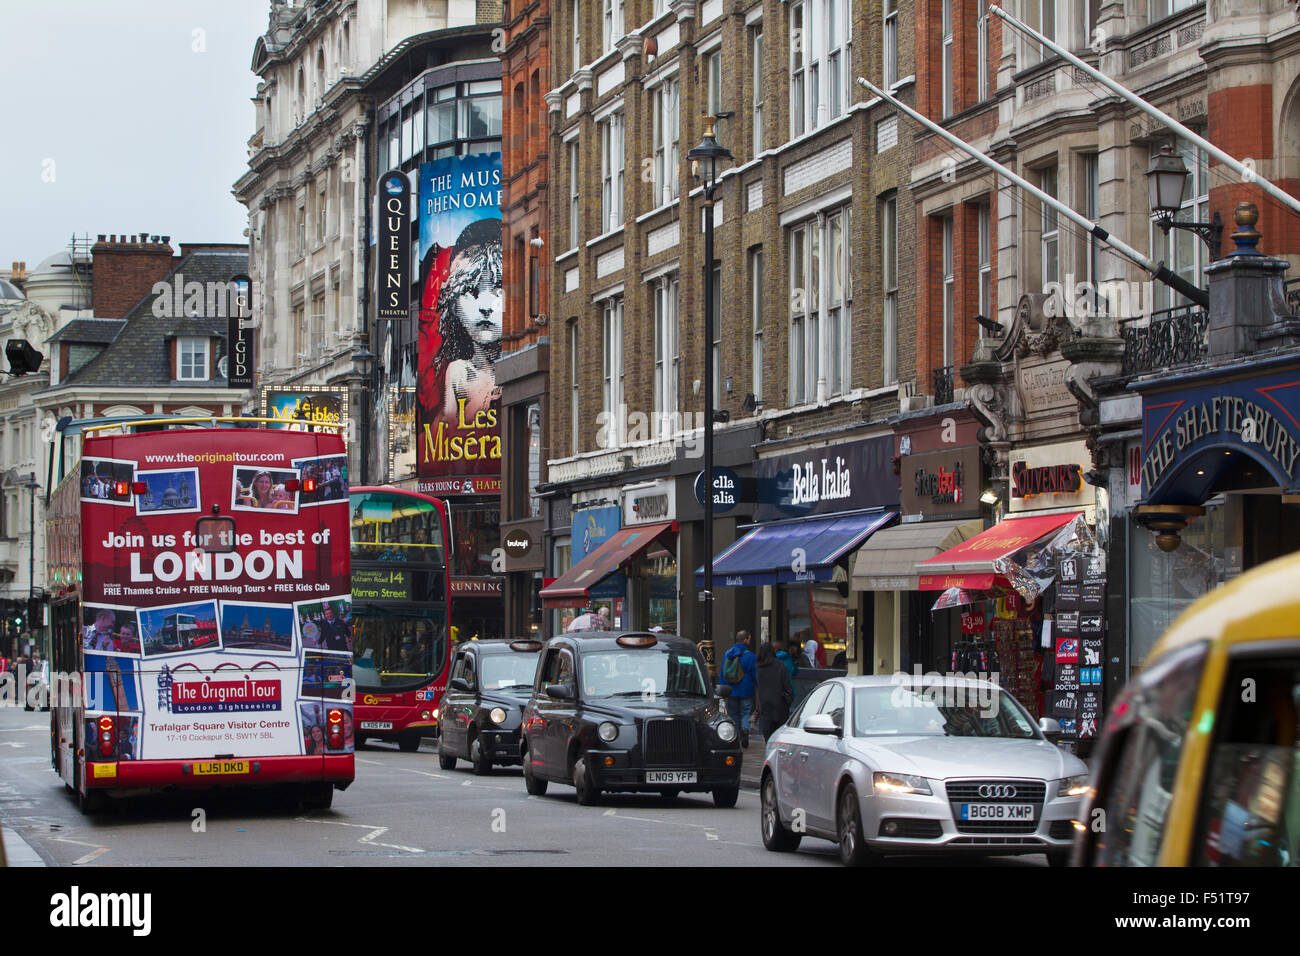 Shaftesbury Avenue, West End, Central London, England United Kingdom - Stock Image